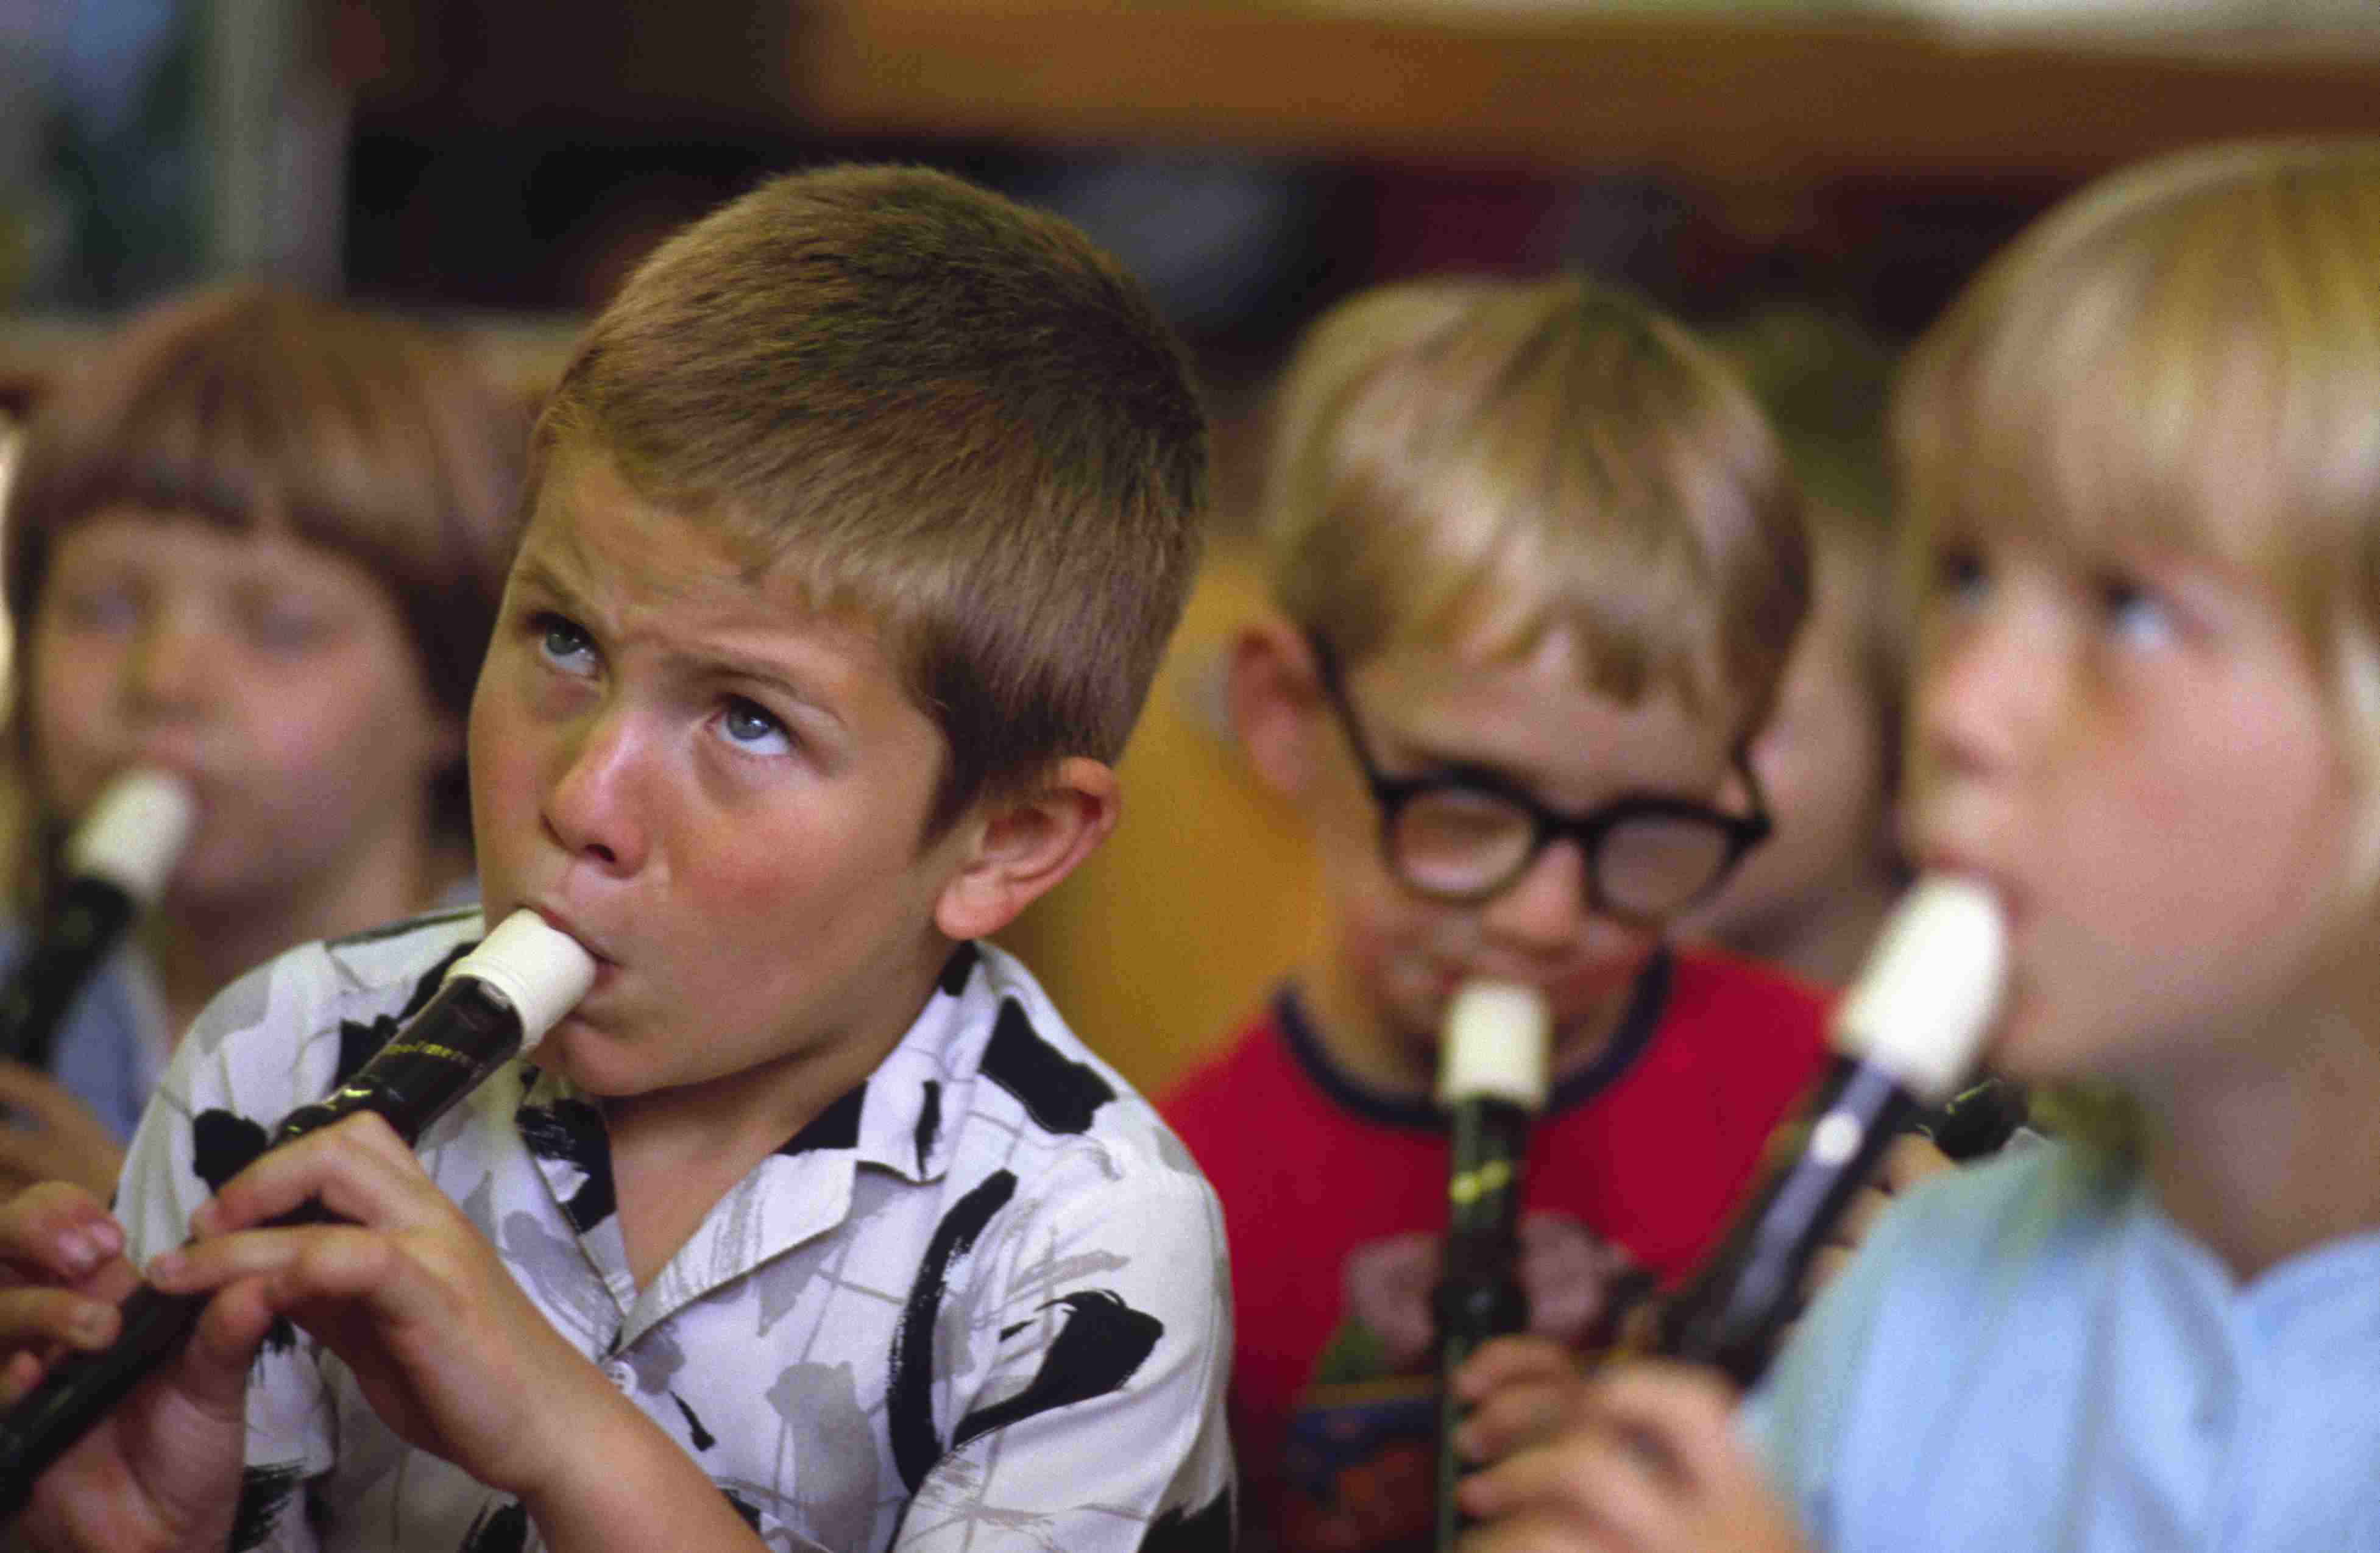 Children Playing Music on Recorders